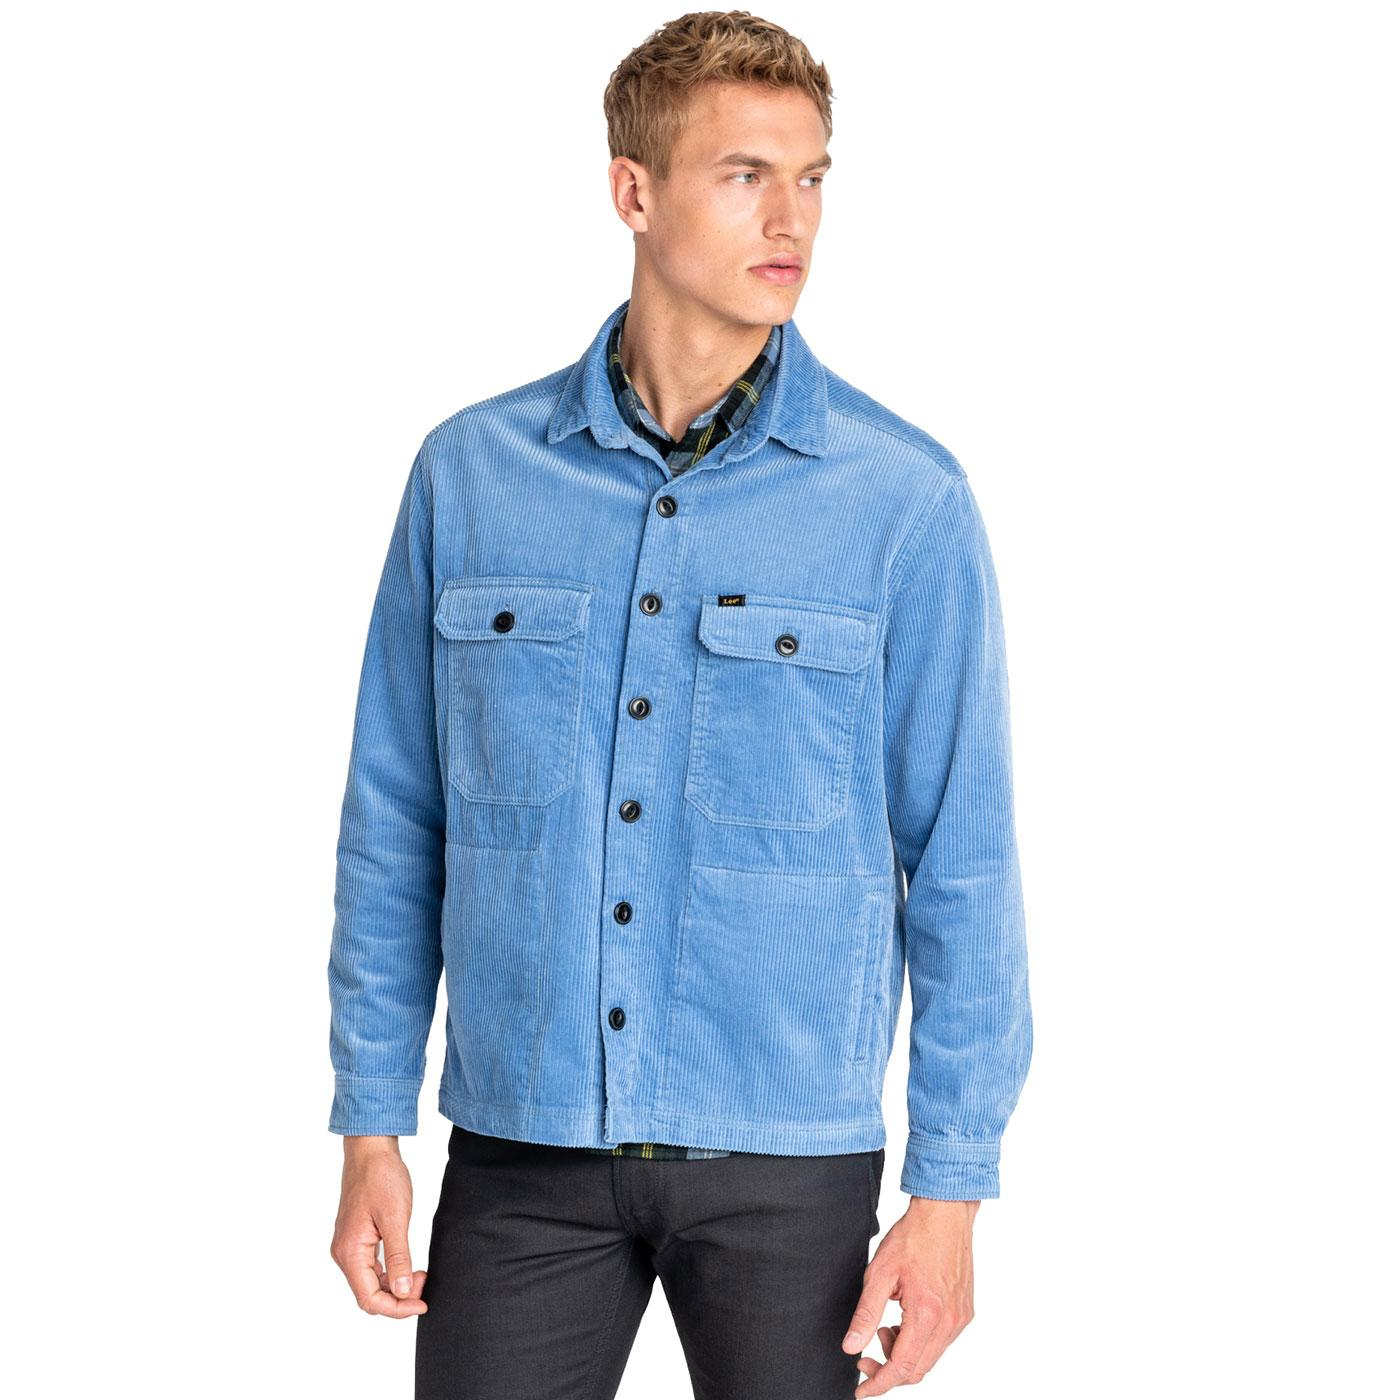 LEE JEANS Seventies Retro Jumbo Cord Overshirt FB